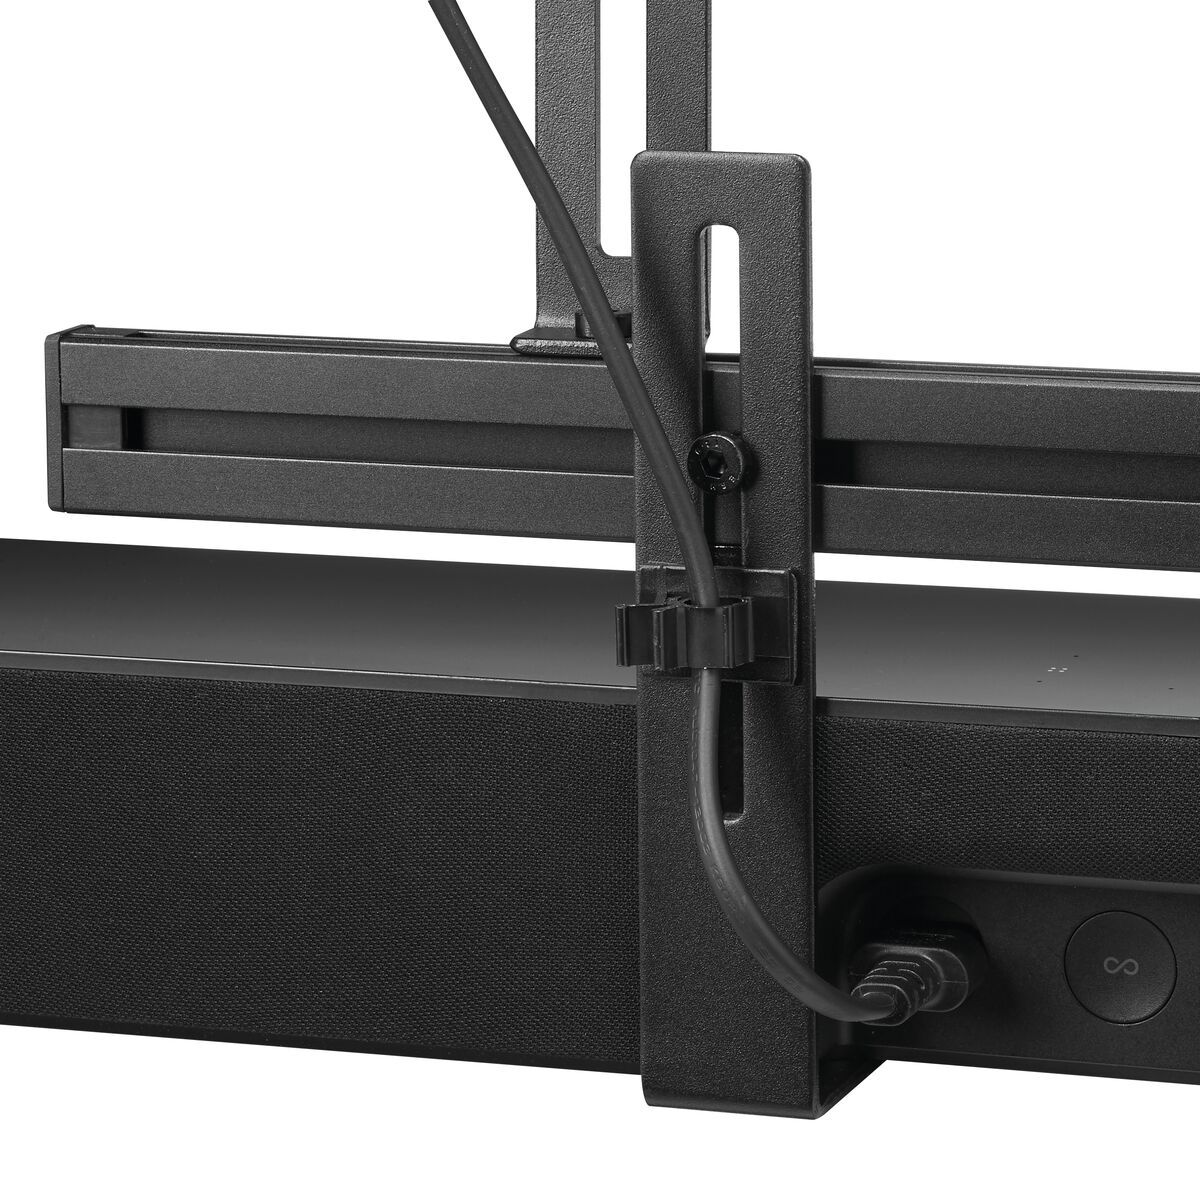 Vogel's SOUND 3550 Uchwyt soundbar - Detail